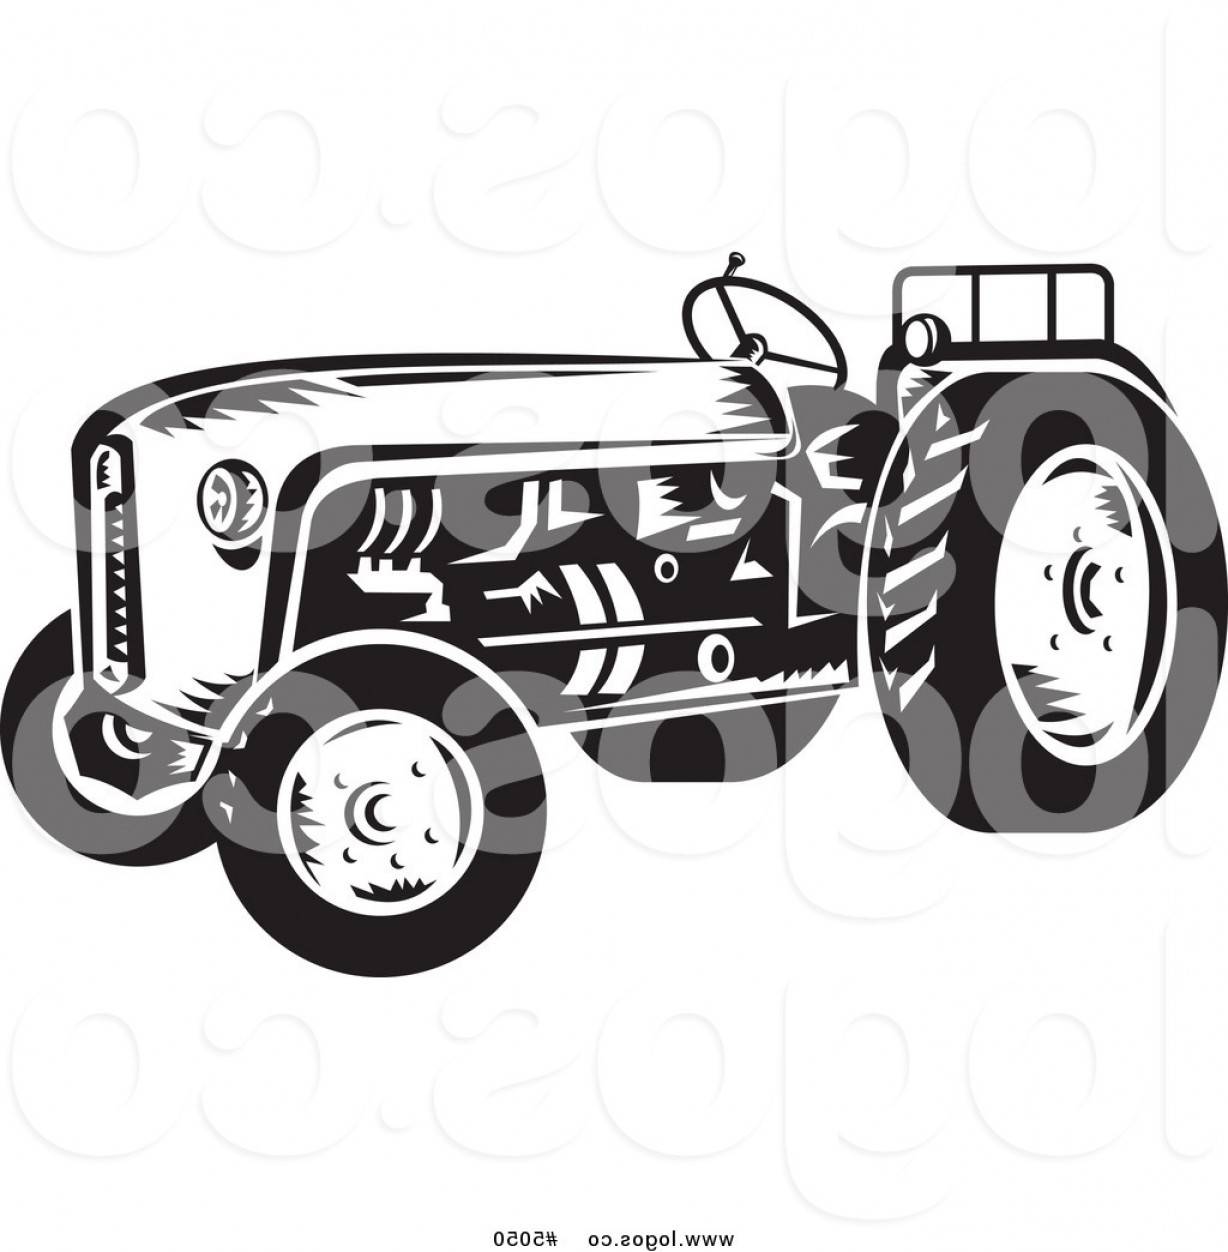 Free Tractor Vector: Royalty Free Vector Of A Black And White Farming Tractor Logo By Patrimonio